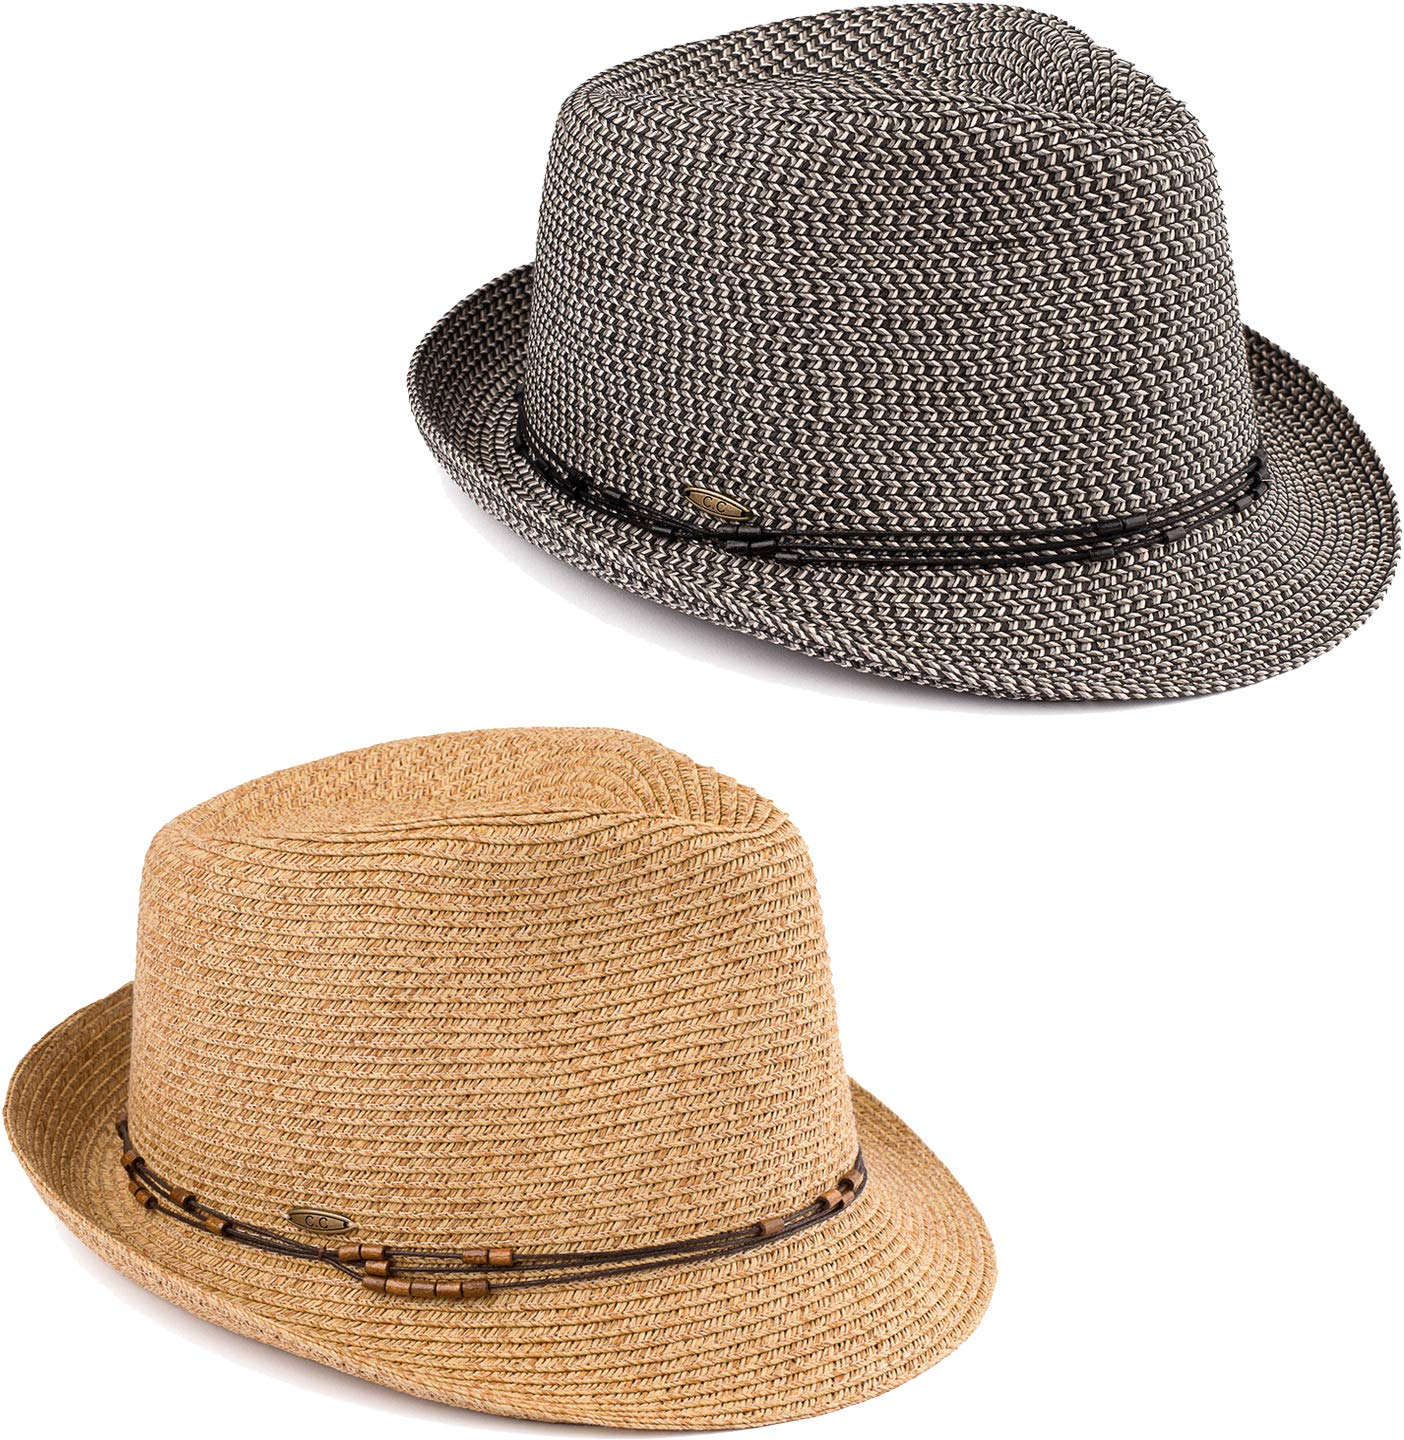 Funky Junque UPF50+ Adjustable Multicolor Woven Pattern Short Brim Fedora Hat (2 Pack - Black & Natural Multi w/Beaded Ropes) by Funky Junque